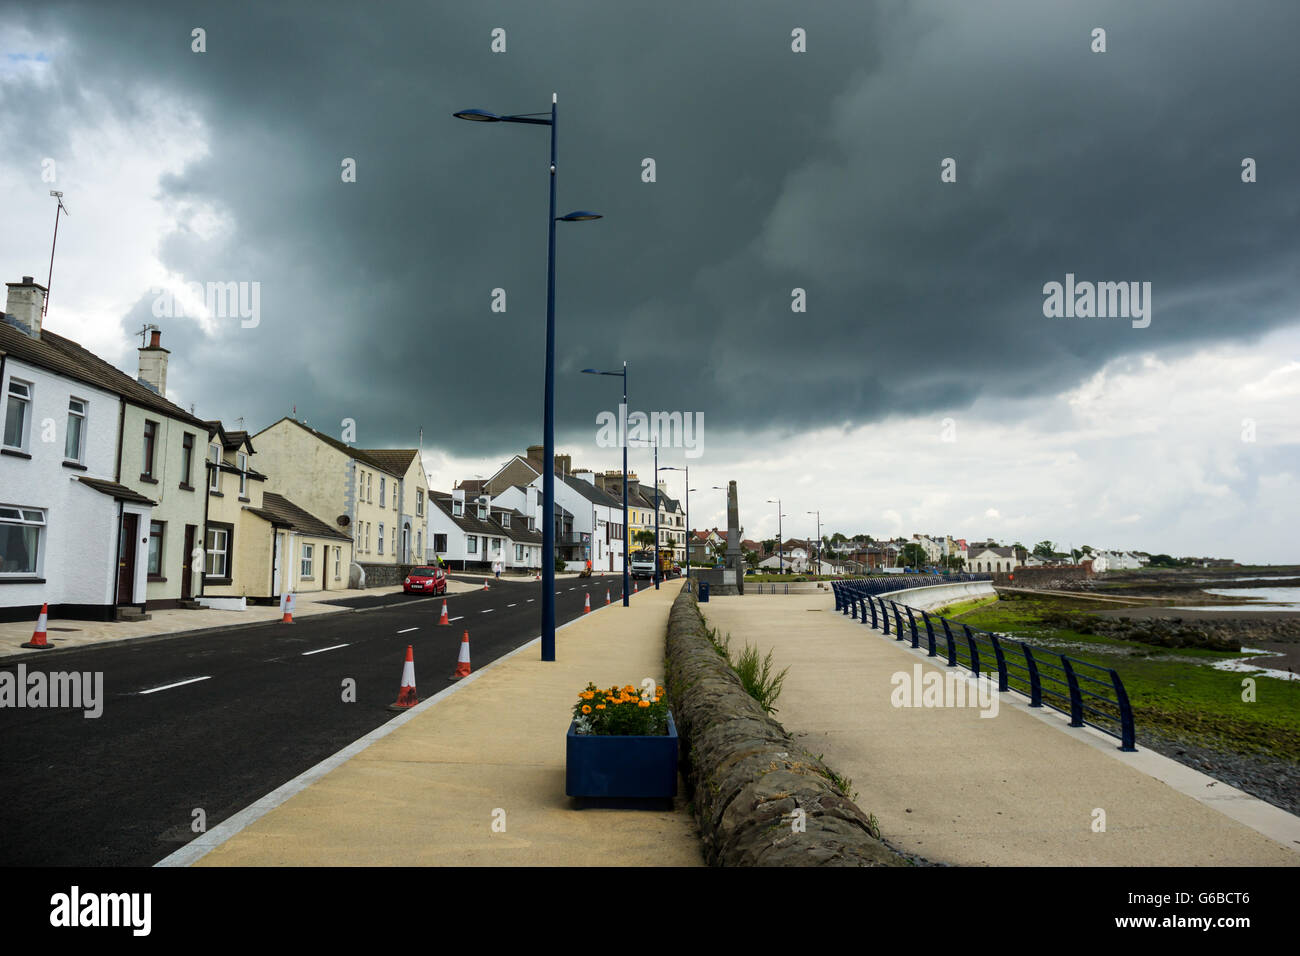 Donaghadee, County Down, UK  24th June 2016  Roadworks   Traffic cones preventing parking with dark brooding sky - Stock Image